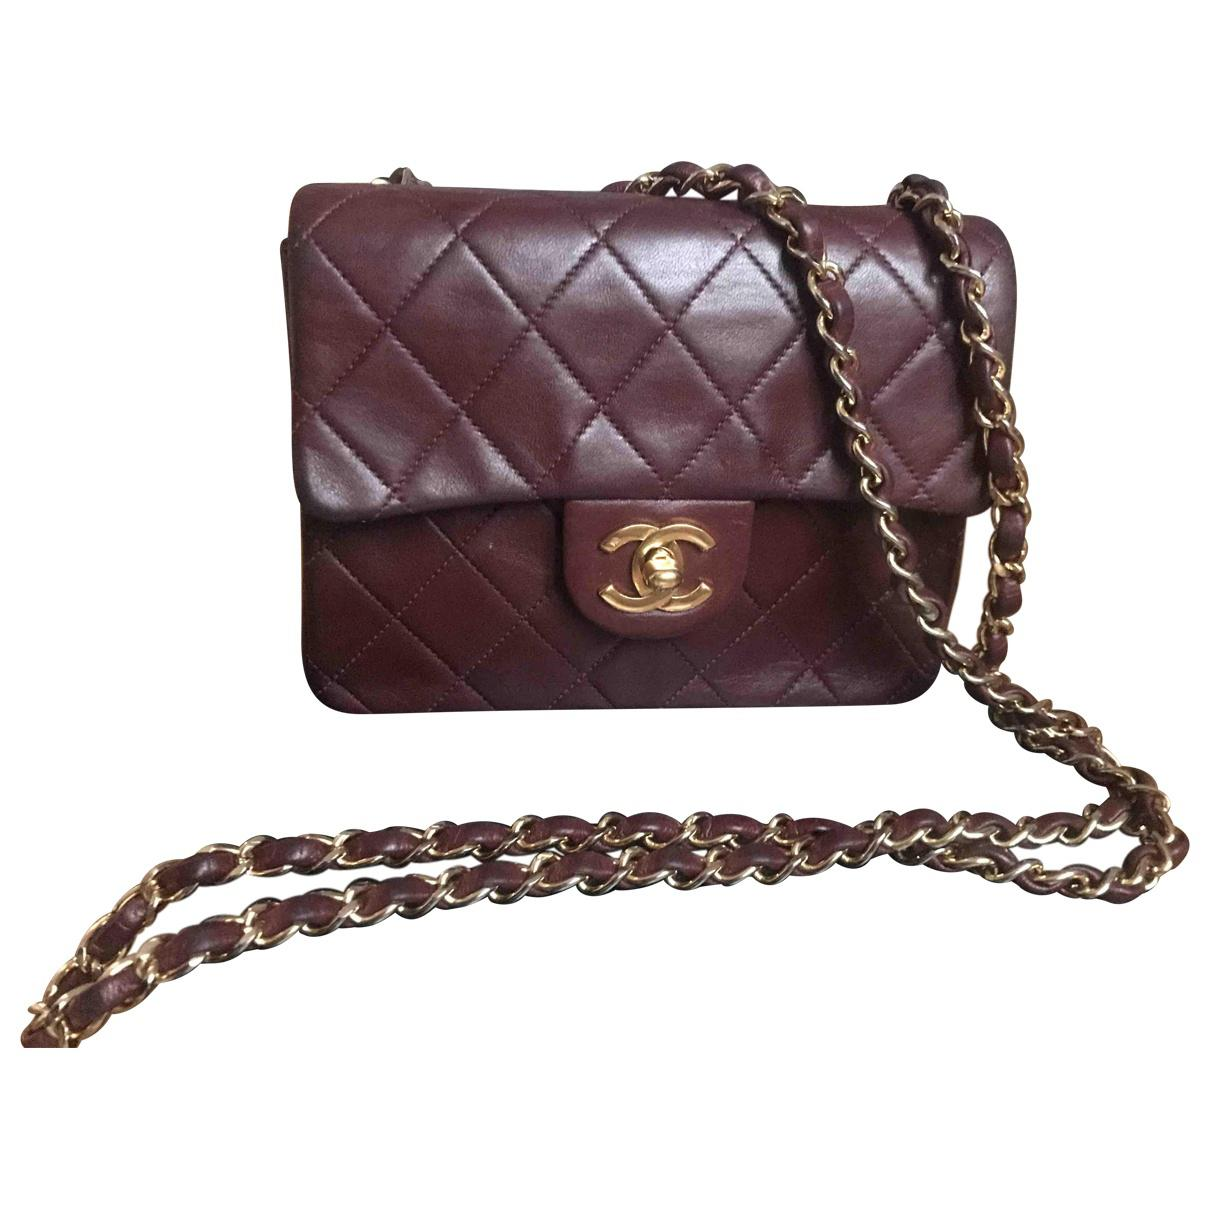 56c1ab458cd81f Lyst - Chanel Pre-owned Vintage Timeless Burgundy Leather Handbags ...